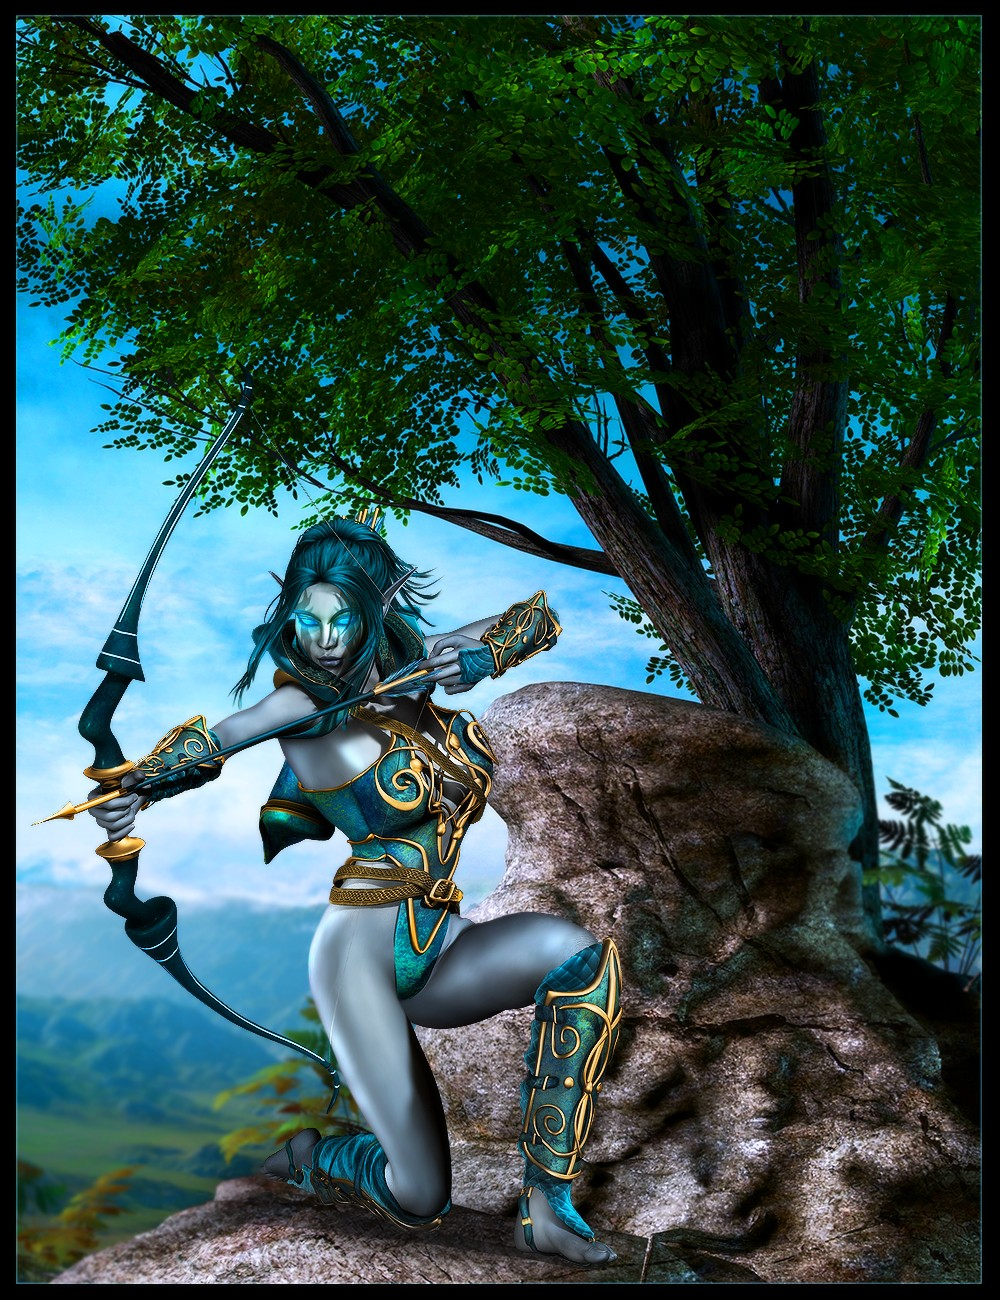 Blue skinned elves erotic scene